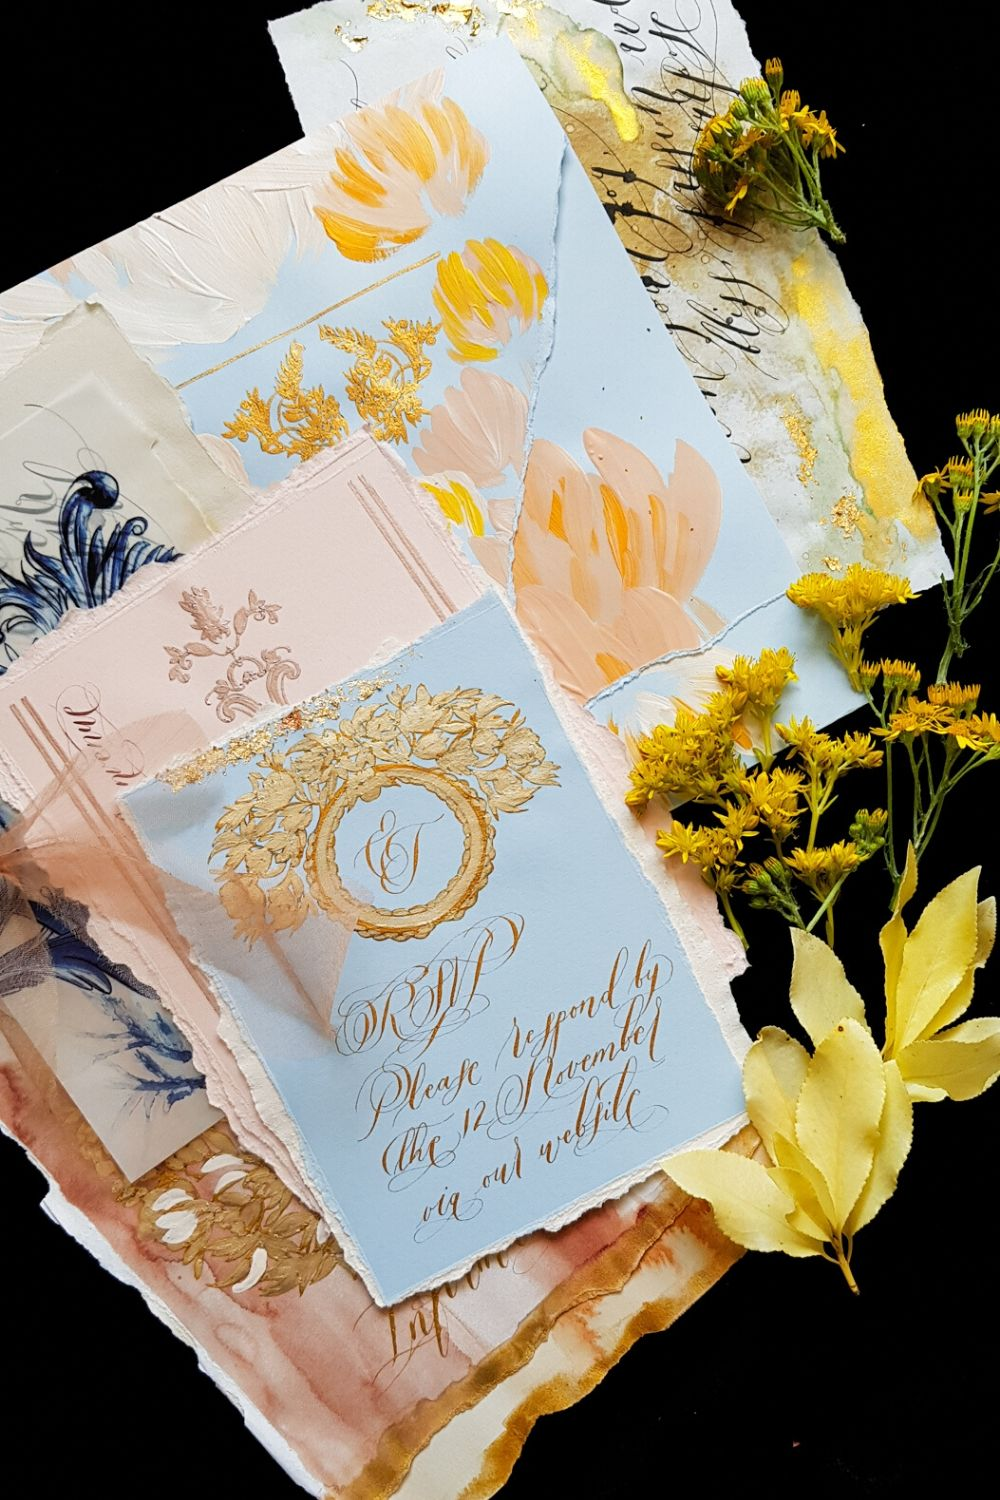 Romantic elegant blue blush and gold fine art wedding invitation suite for a destination wedding at Villa Cipressi